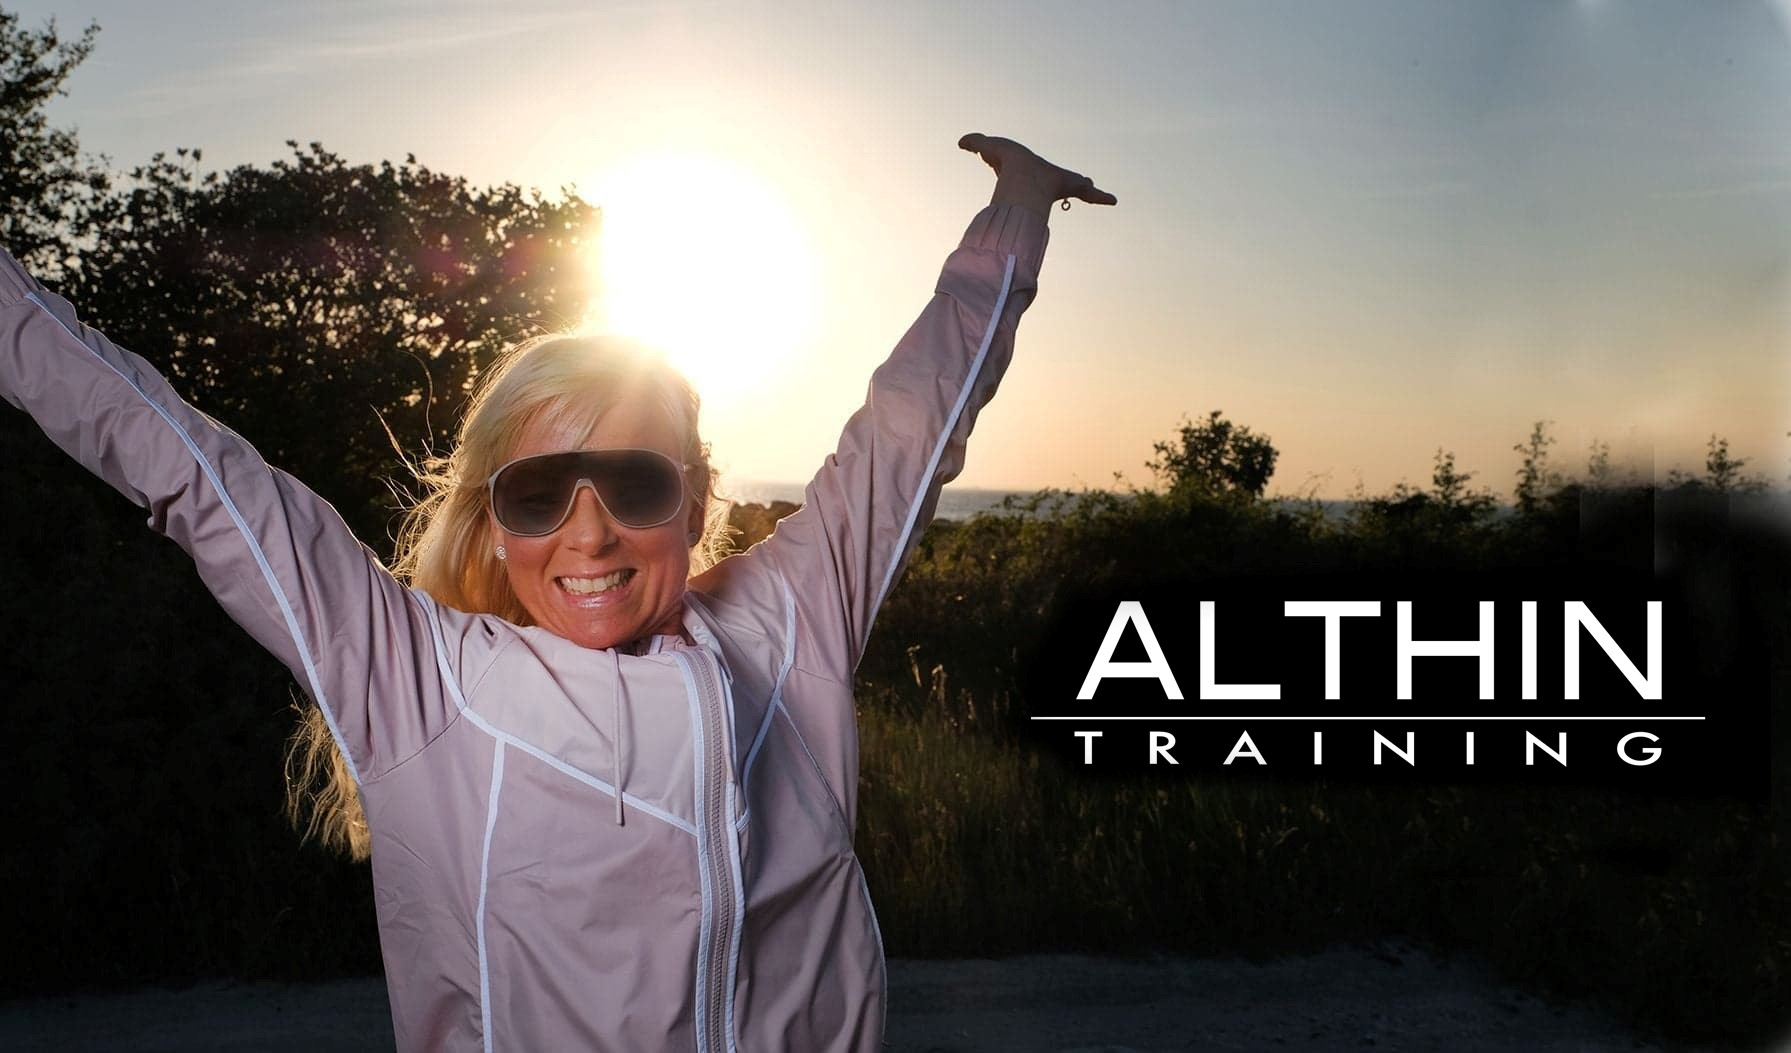 Althin Training